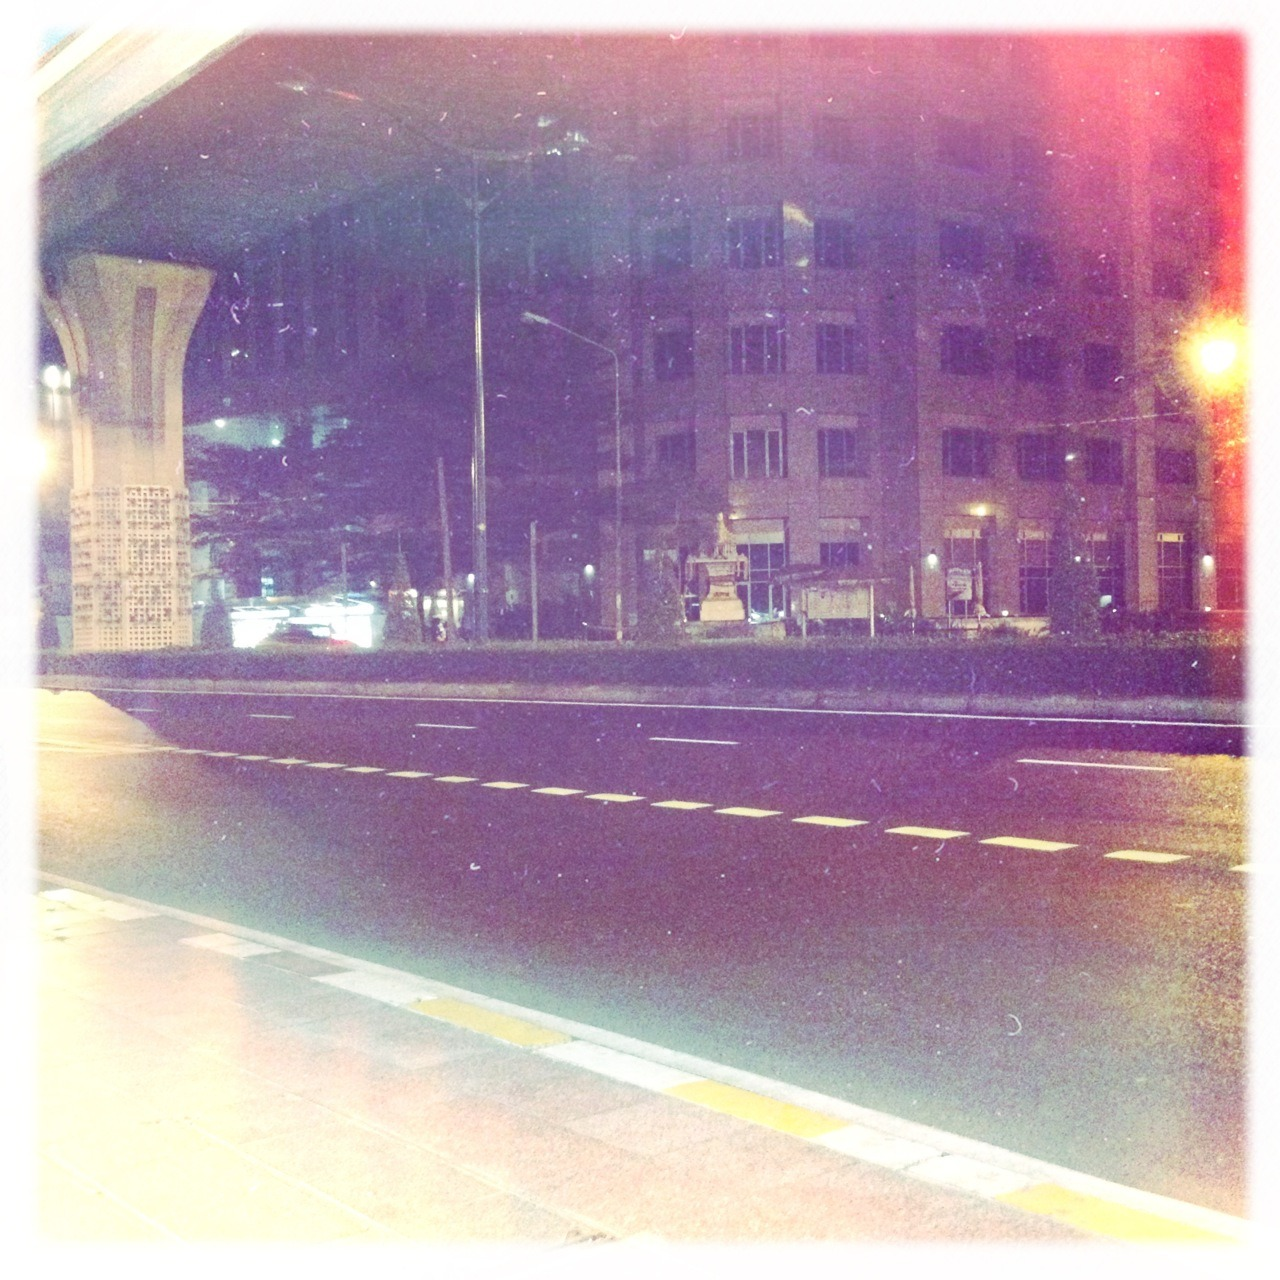 #empty #street #songkran #bangkok Bettie XL Lens, Ina's 1935 Film, No Flash, Taken with Hipstamatic